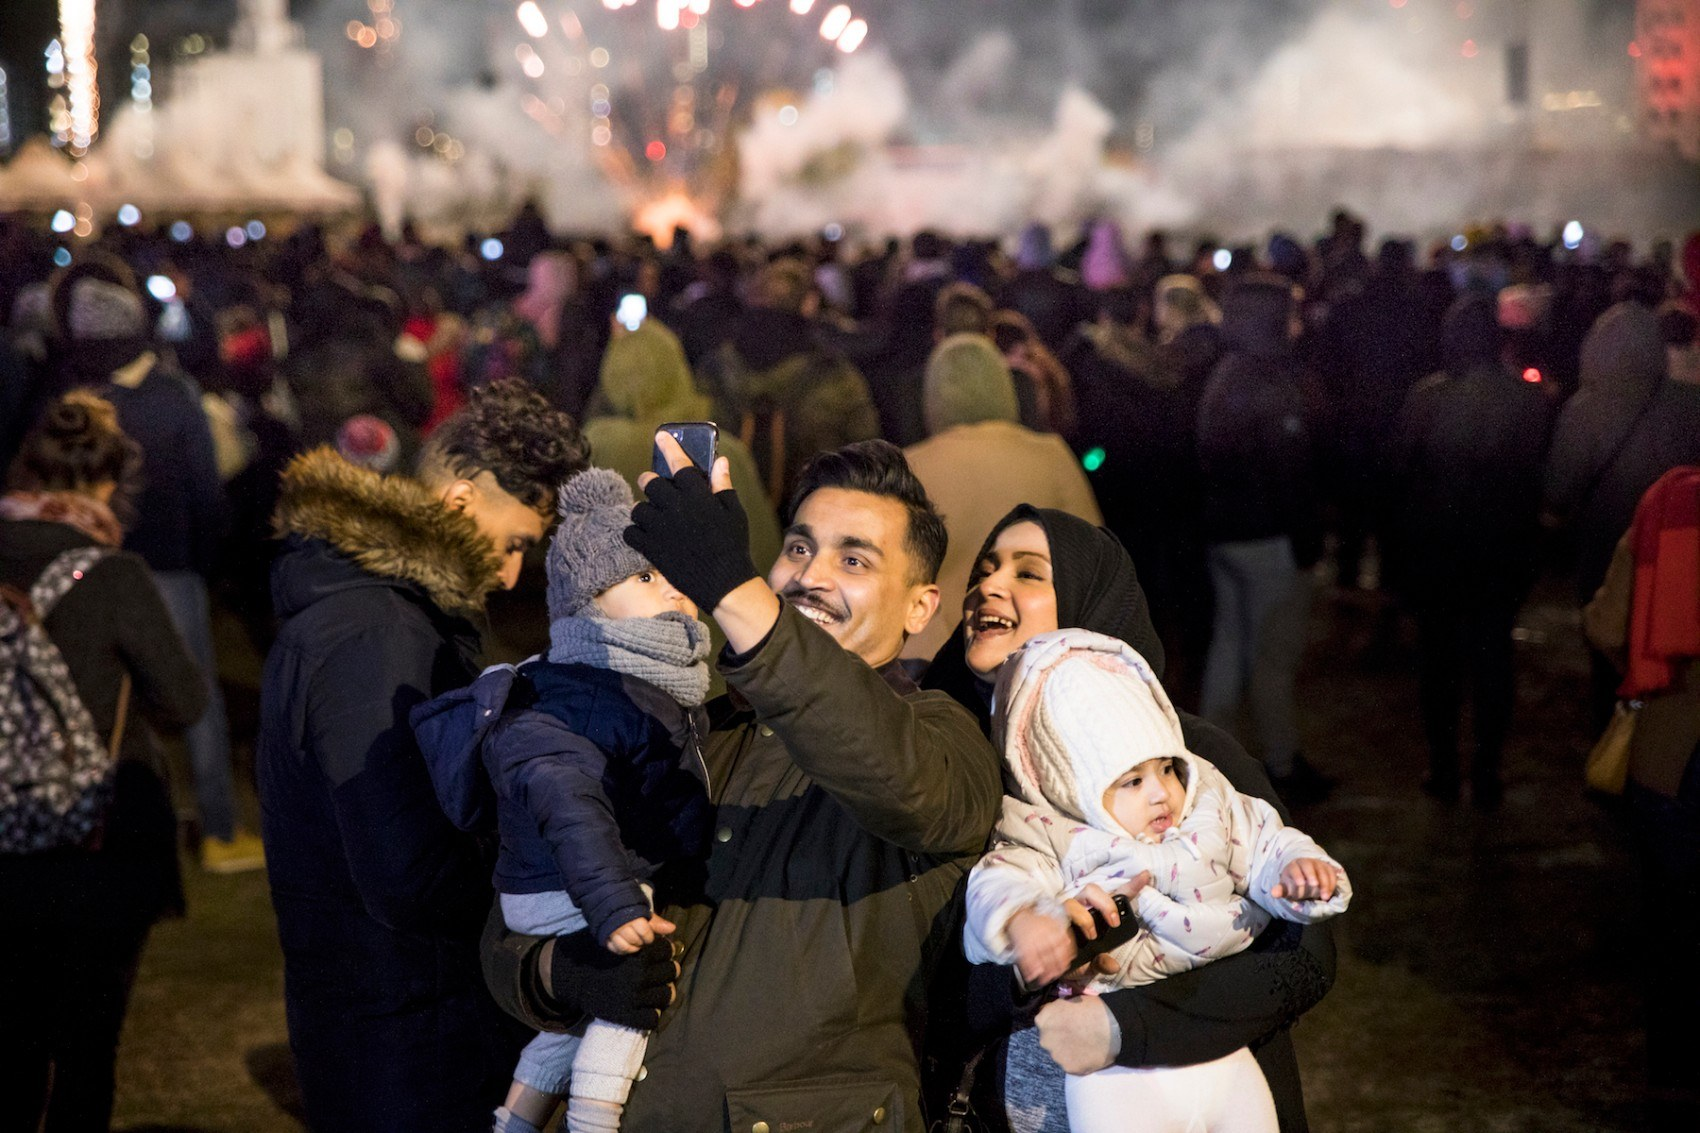 Man and woman holding a child each taking a selfie with fireworks in the background